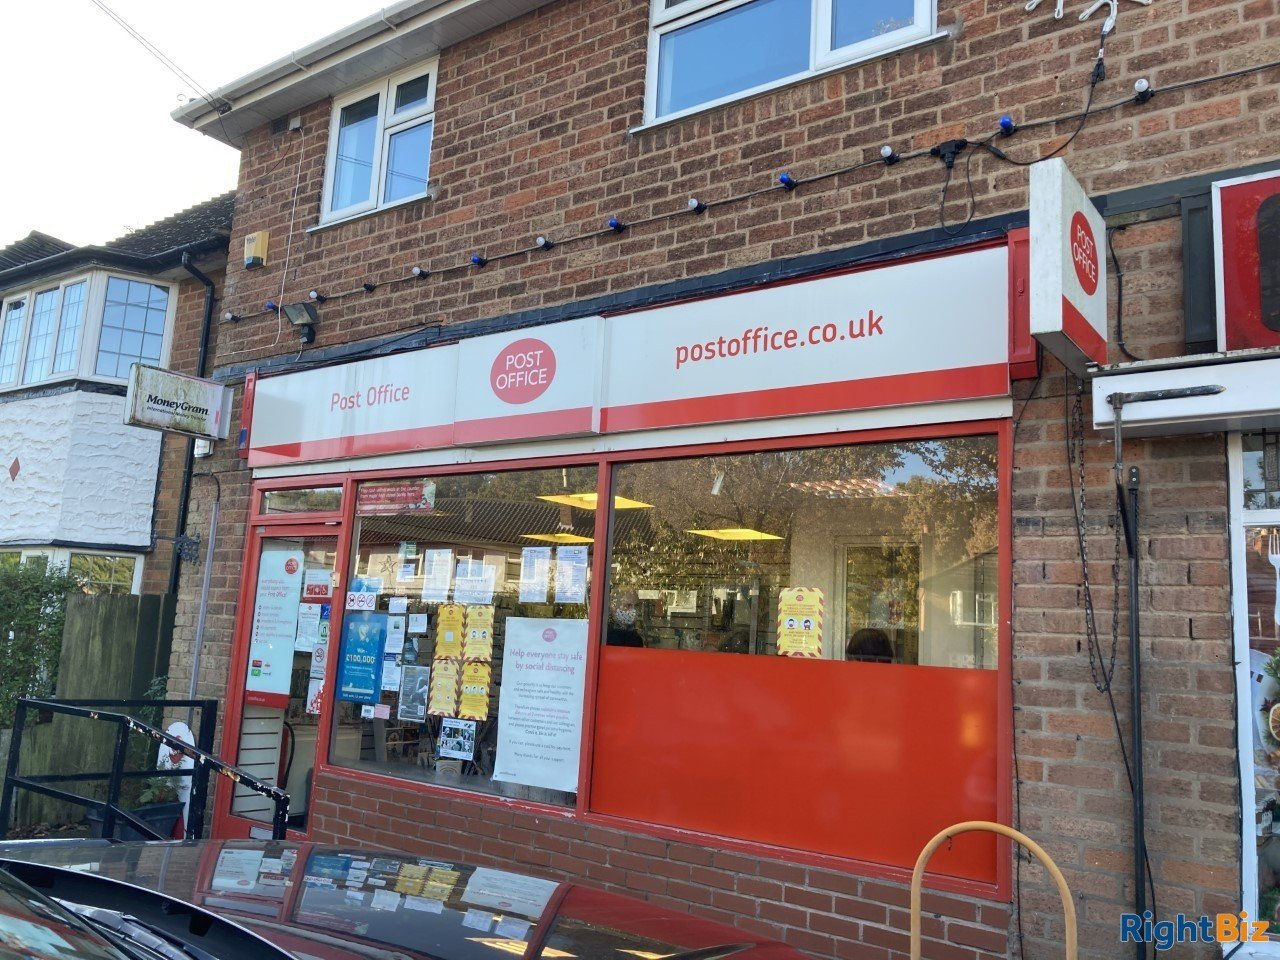 Mains Post Office located in sought after area of Solihull - Image 1